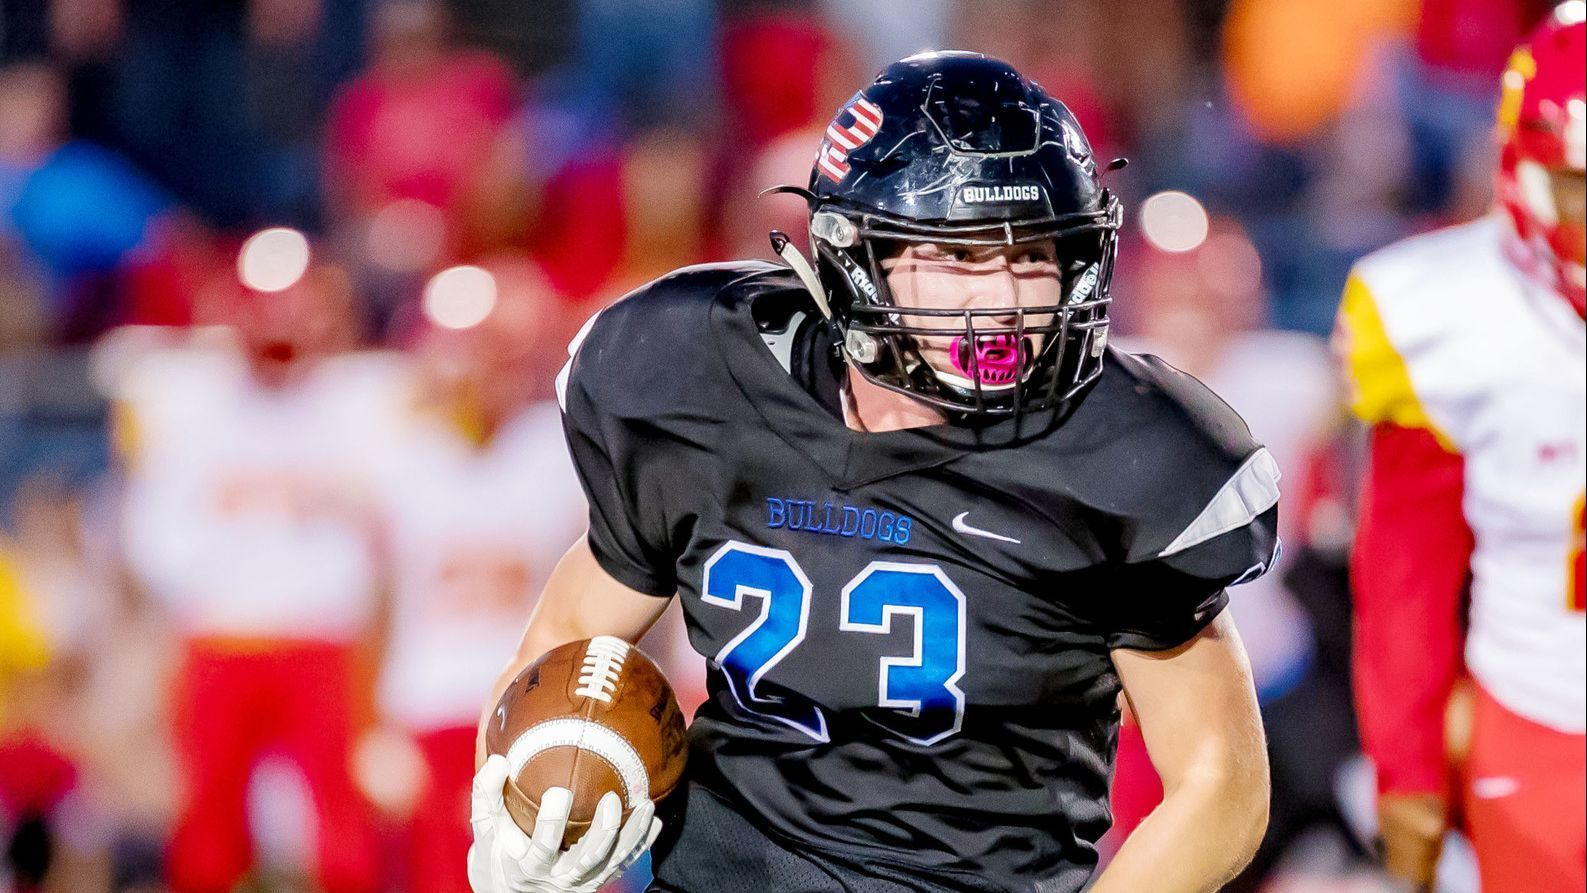 Senior Sean McDonald rushes for two touchdowns in Friday's win over Mt. Carmel.